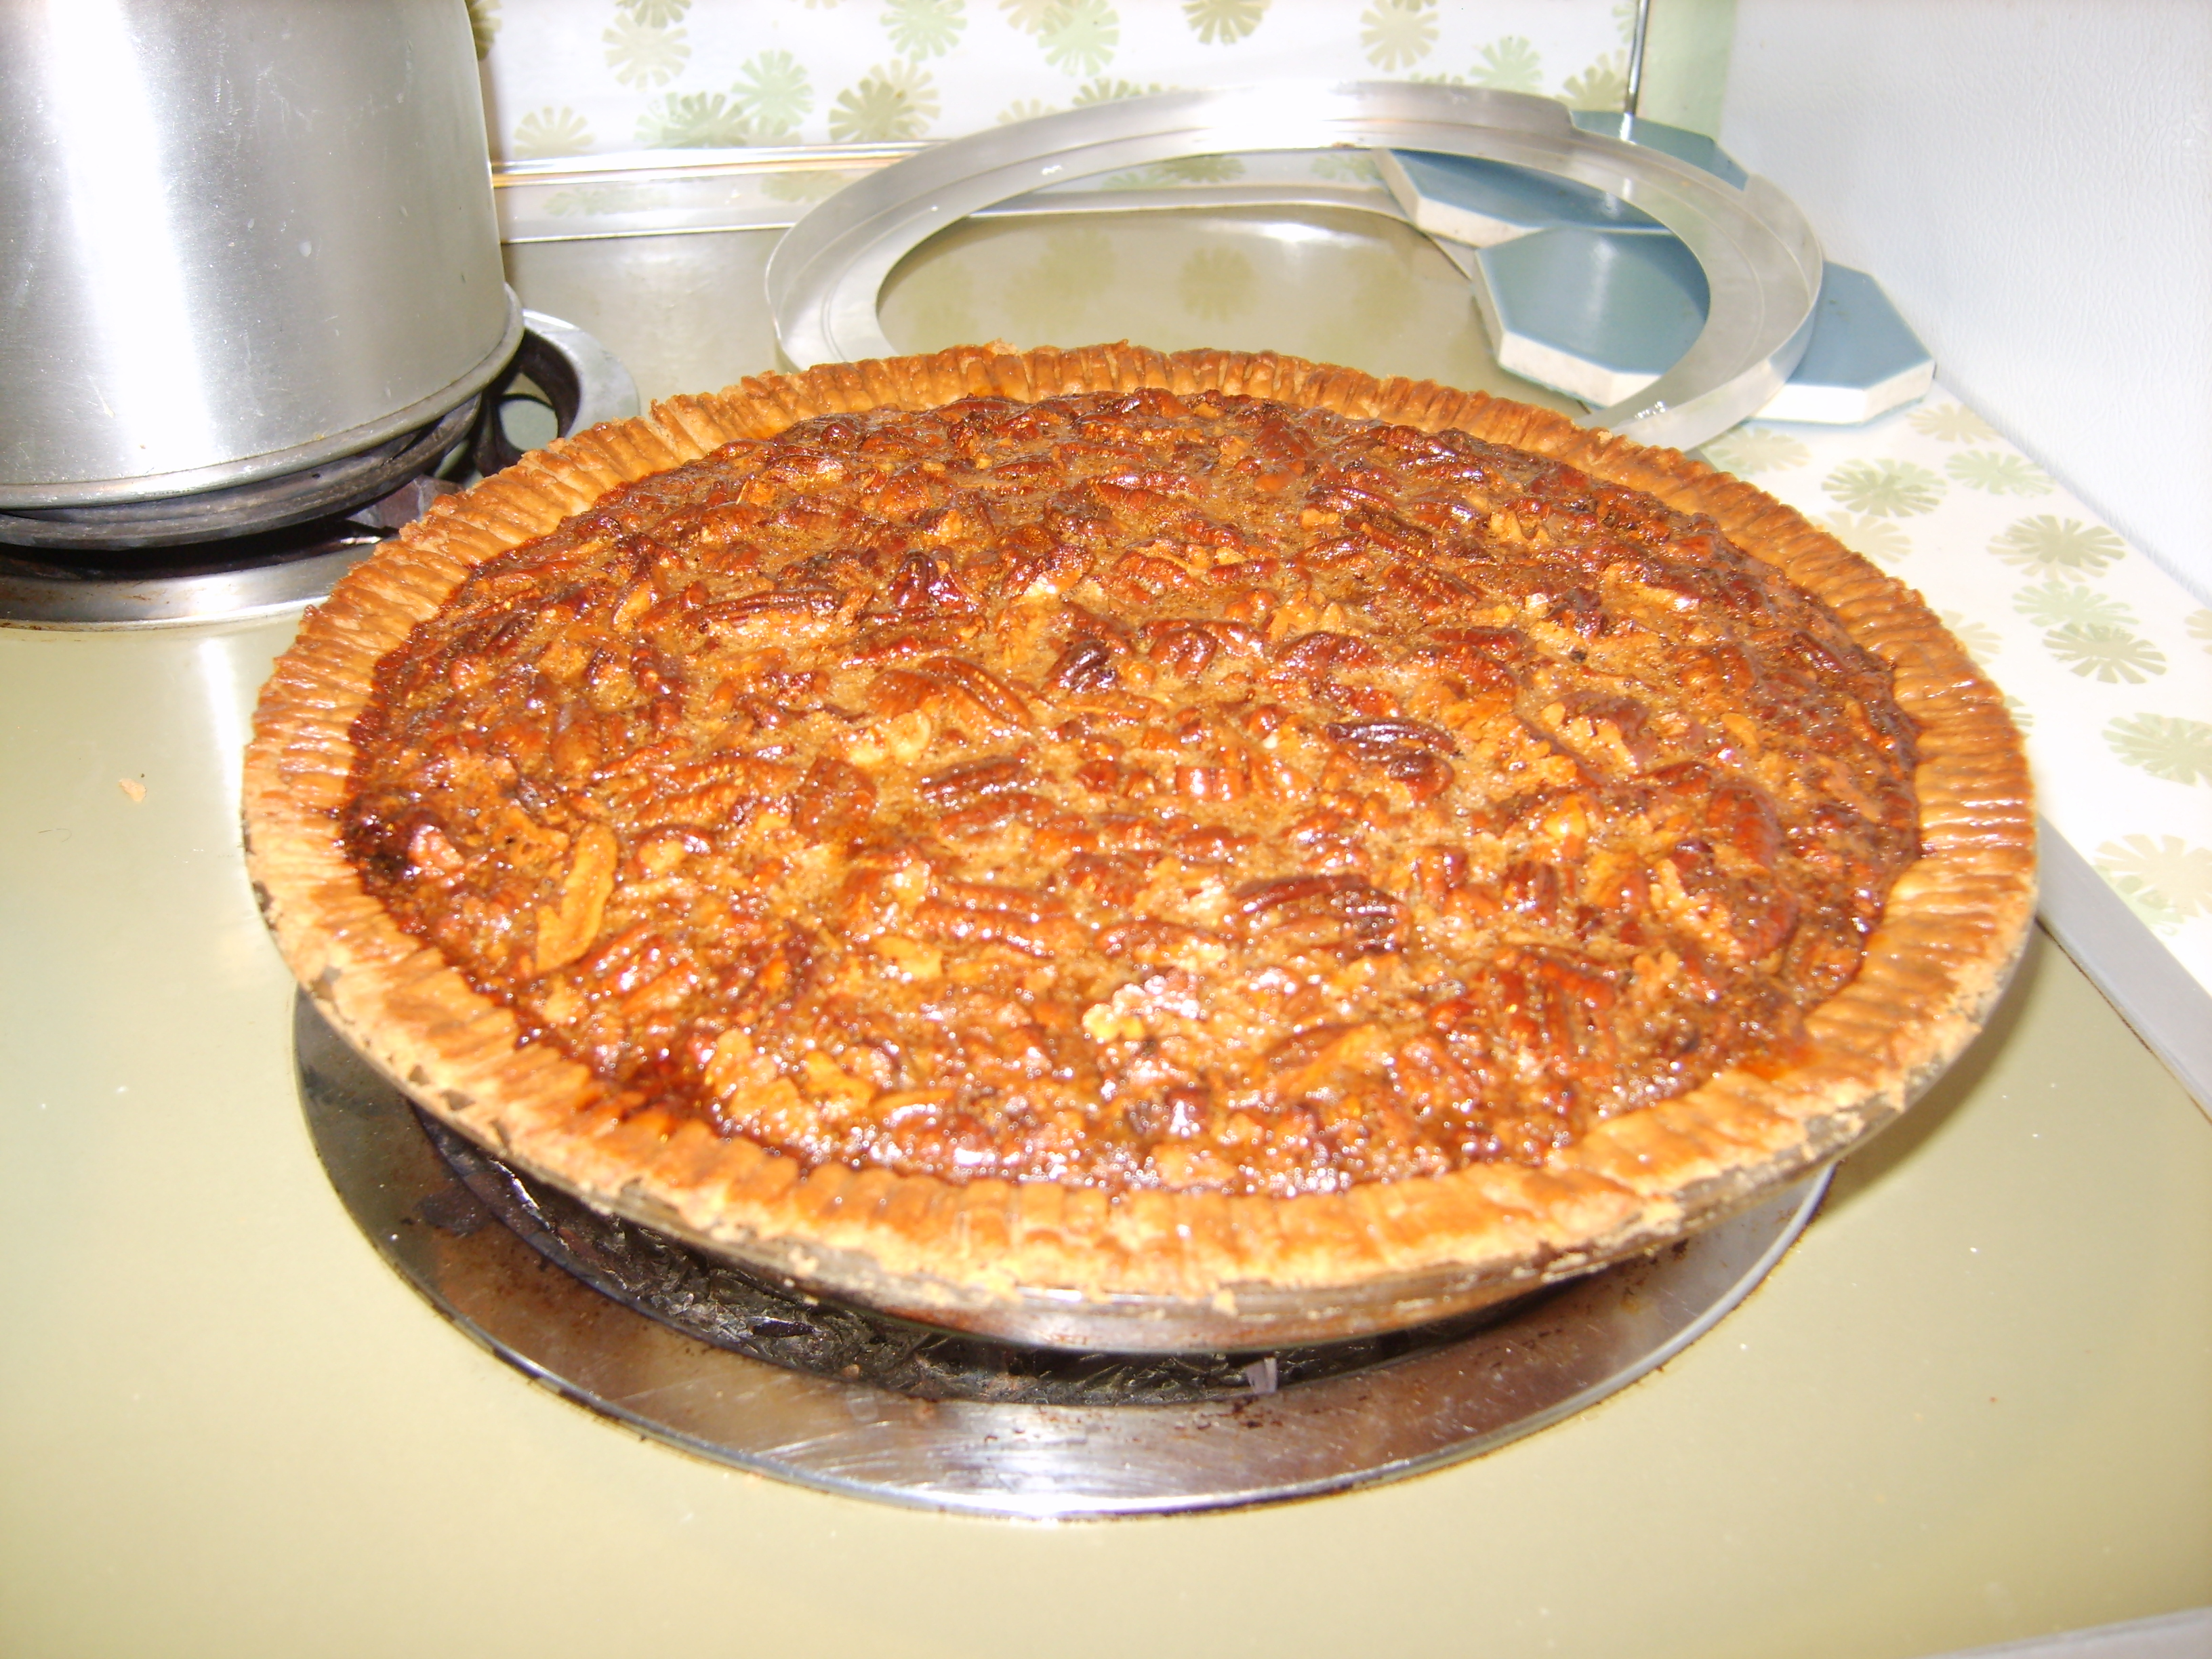 BEST Pecan Pie EVER, period.